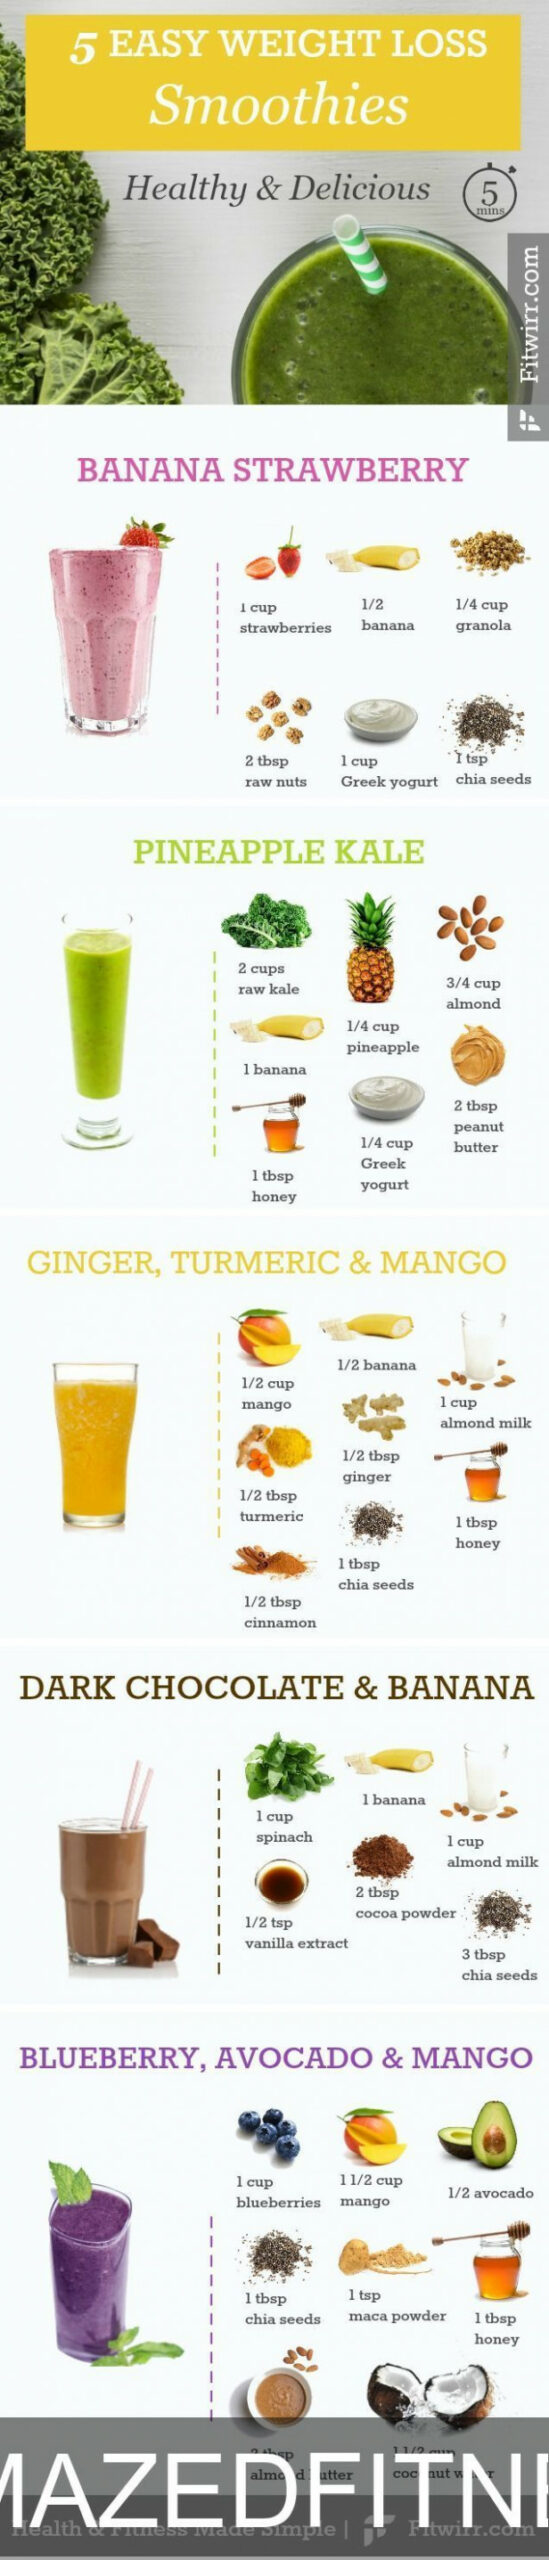 Pin by Lynea Sekany on Healthy smoothie recipes | Healthy ..